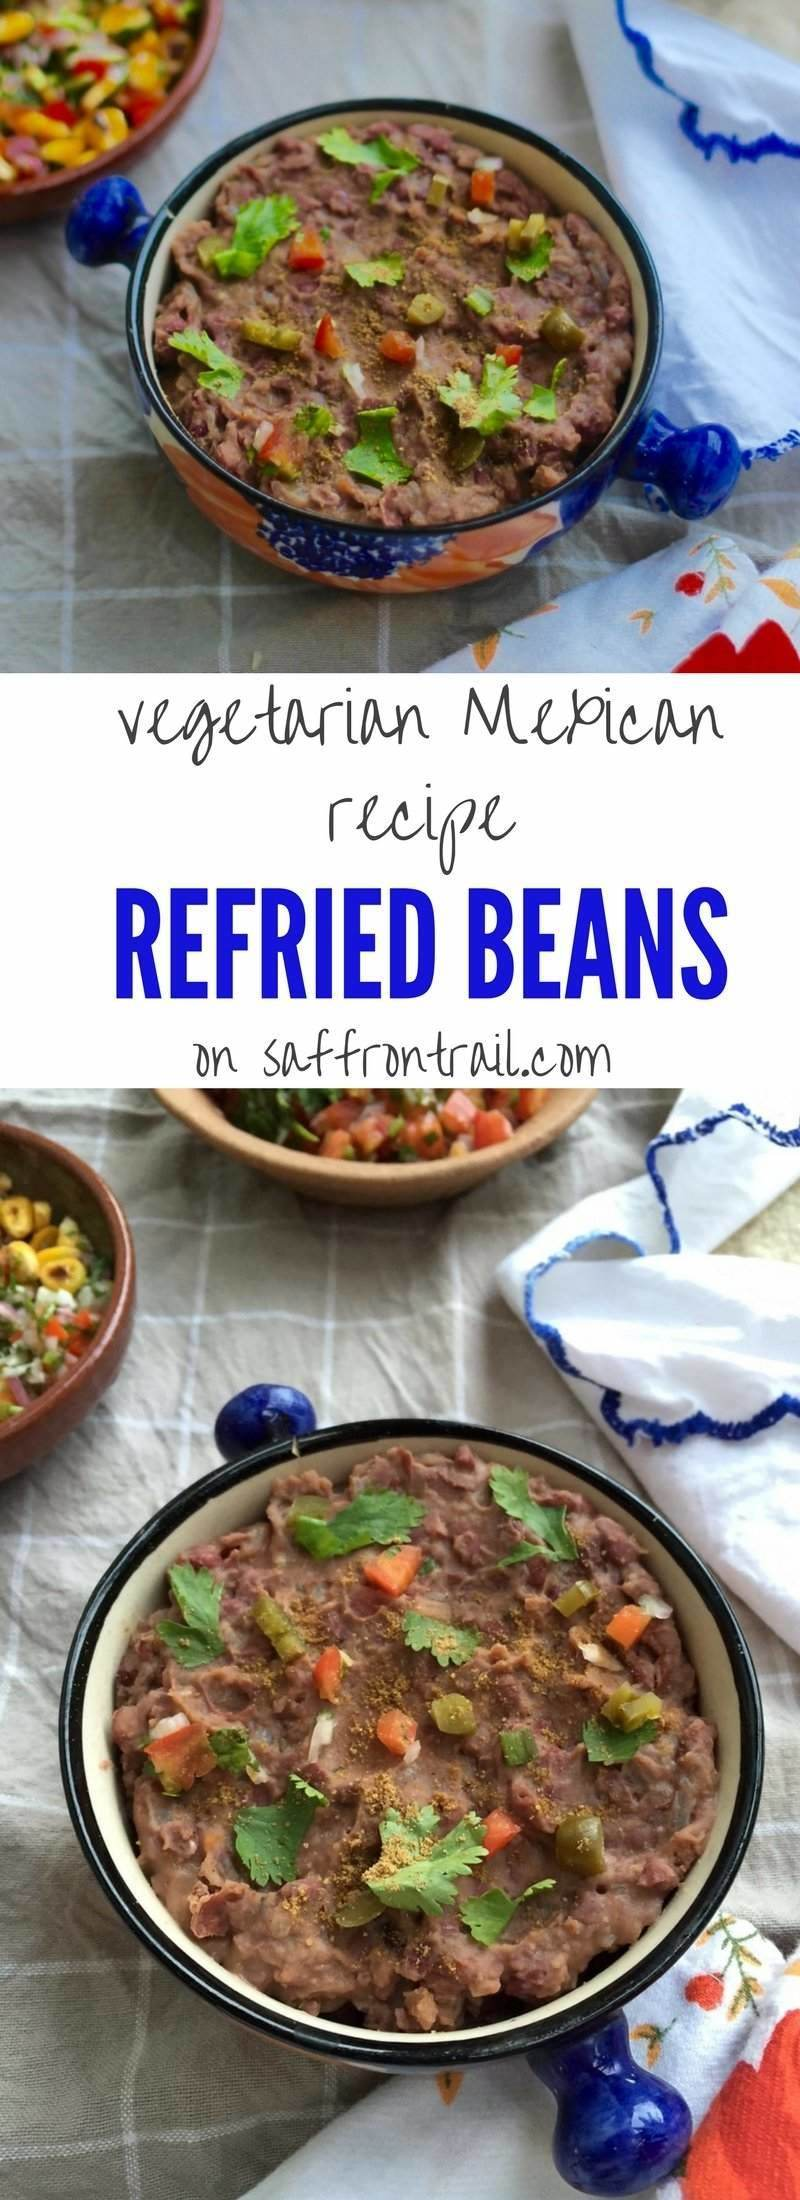 Refried Beans / Frijoles Refritos - Vegetarian Mexican ...